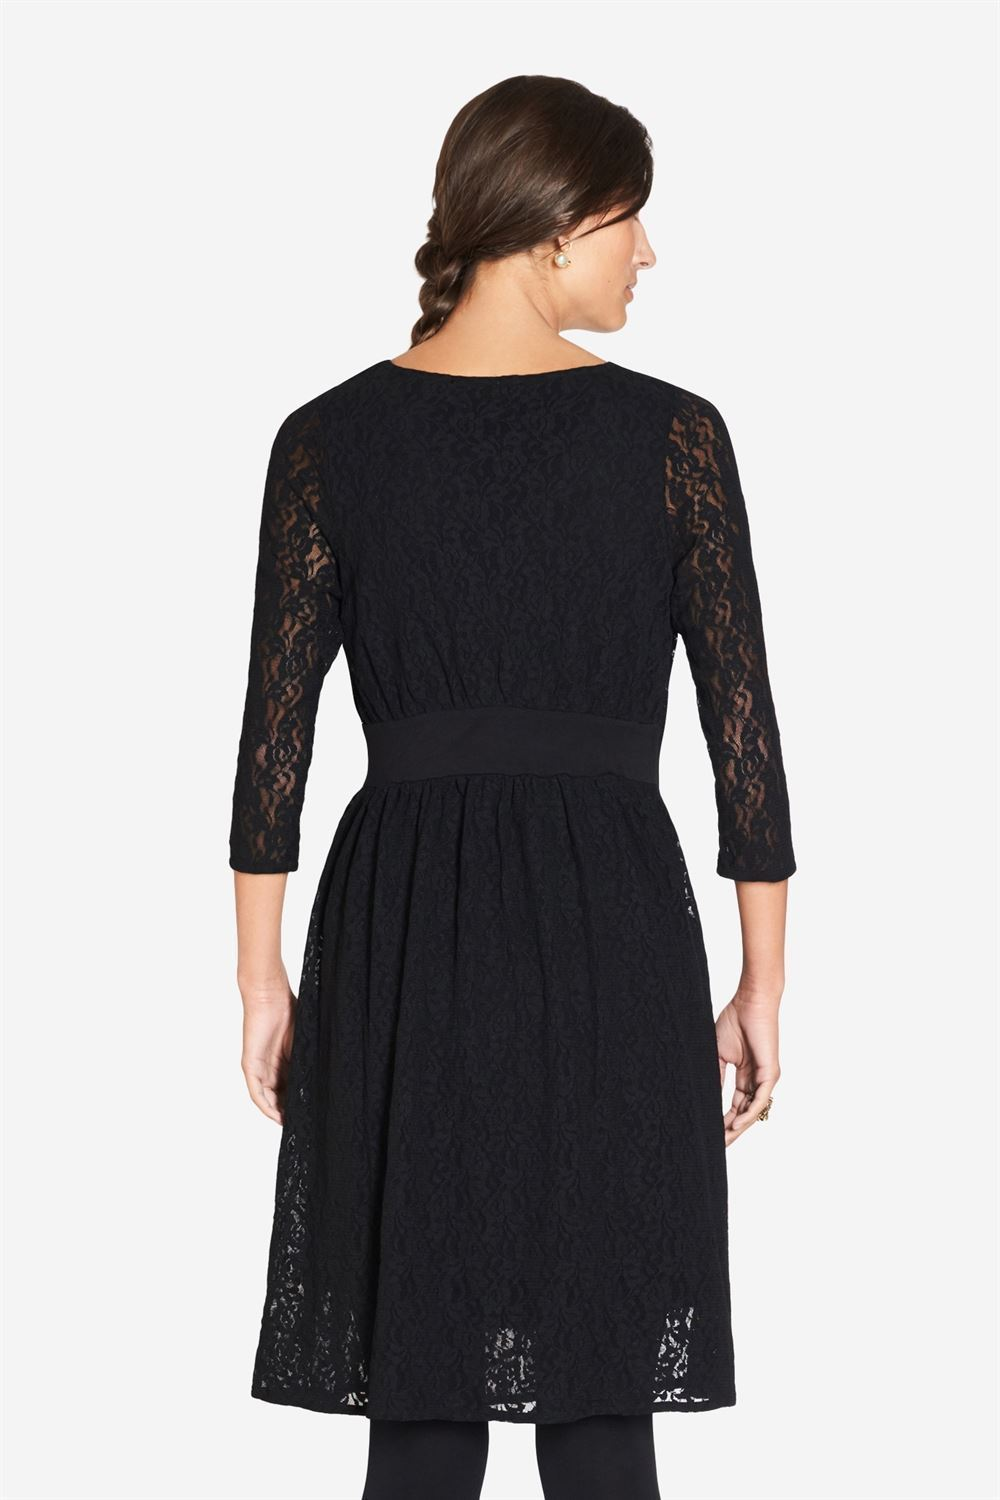 Black Lace nursing dress with Underdress - Seen from behind